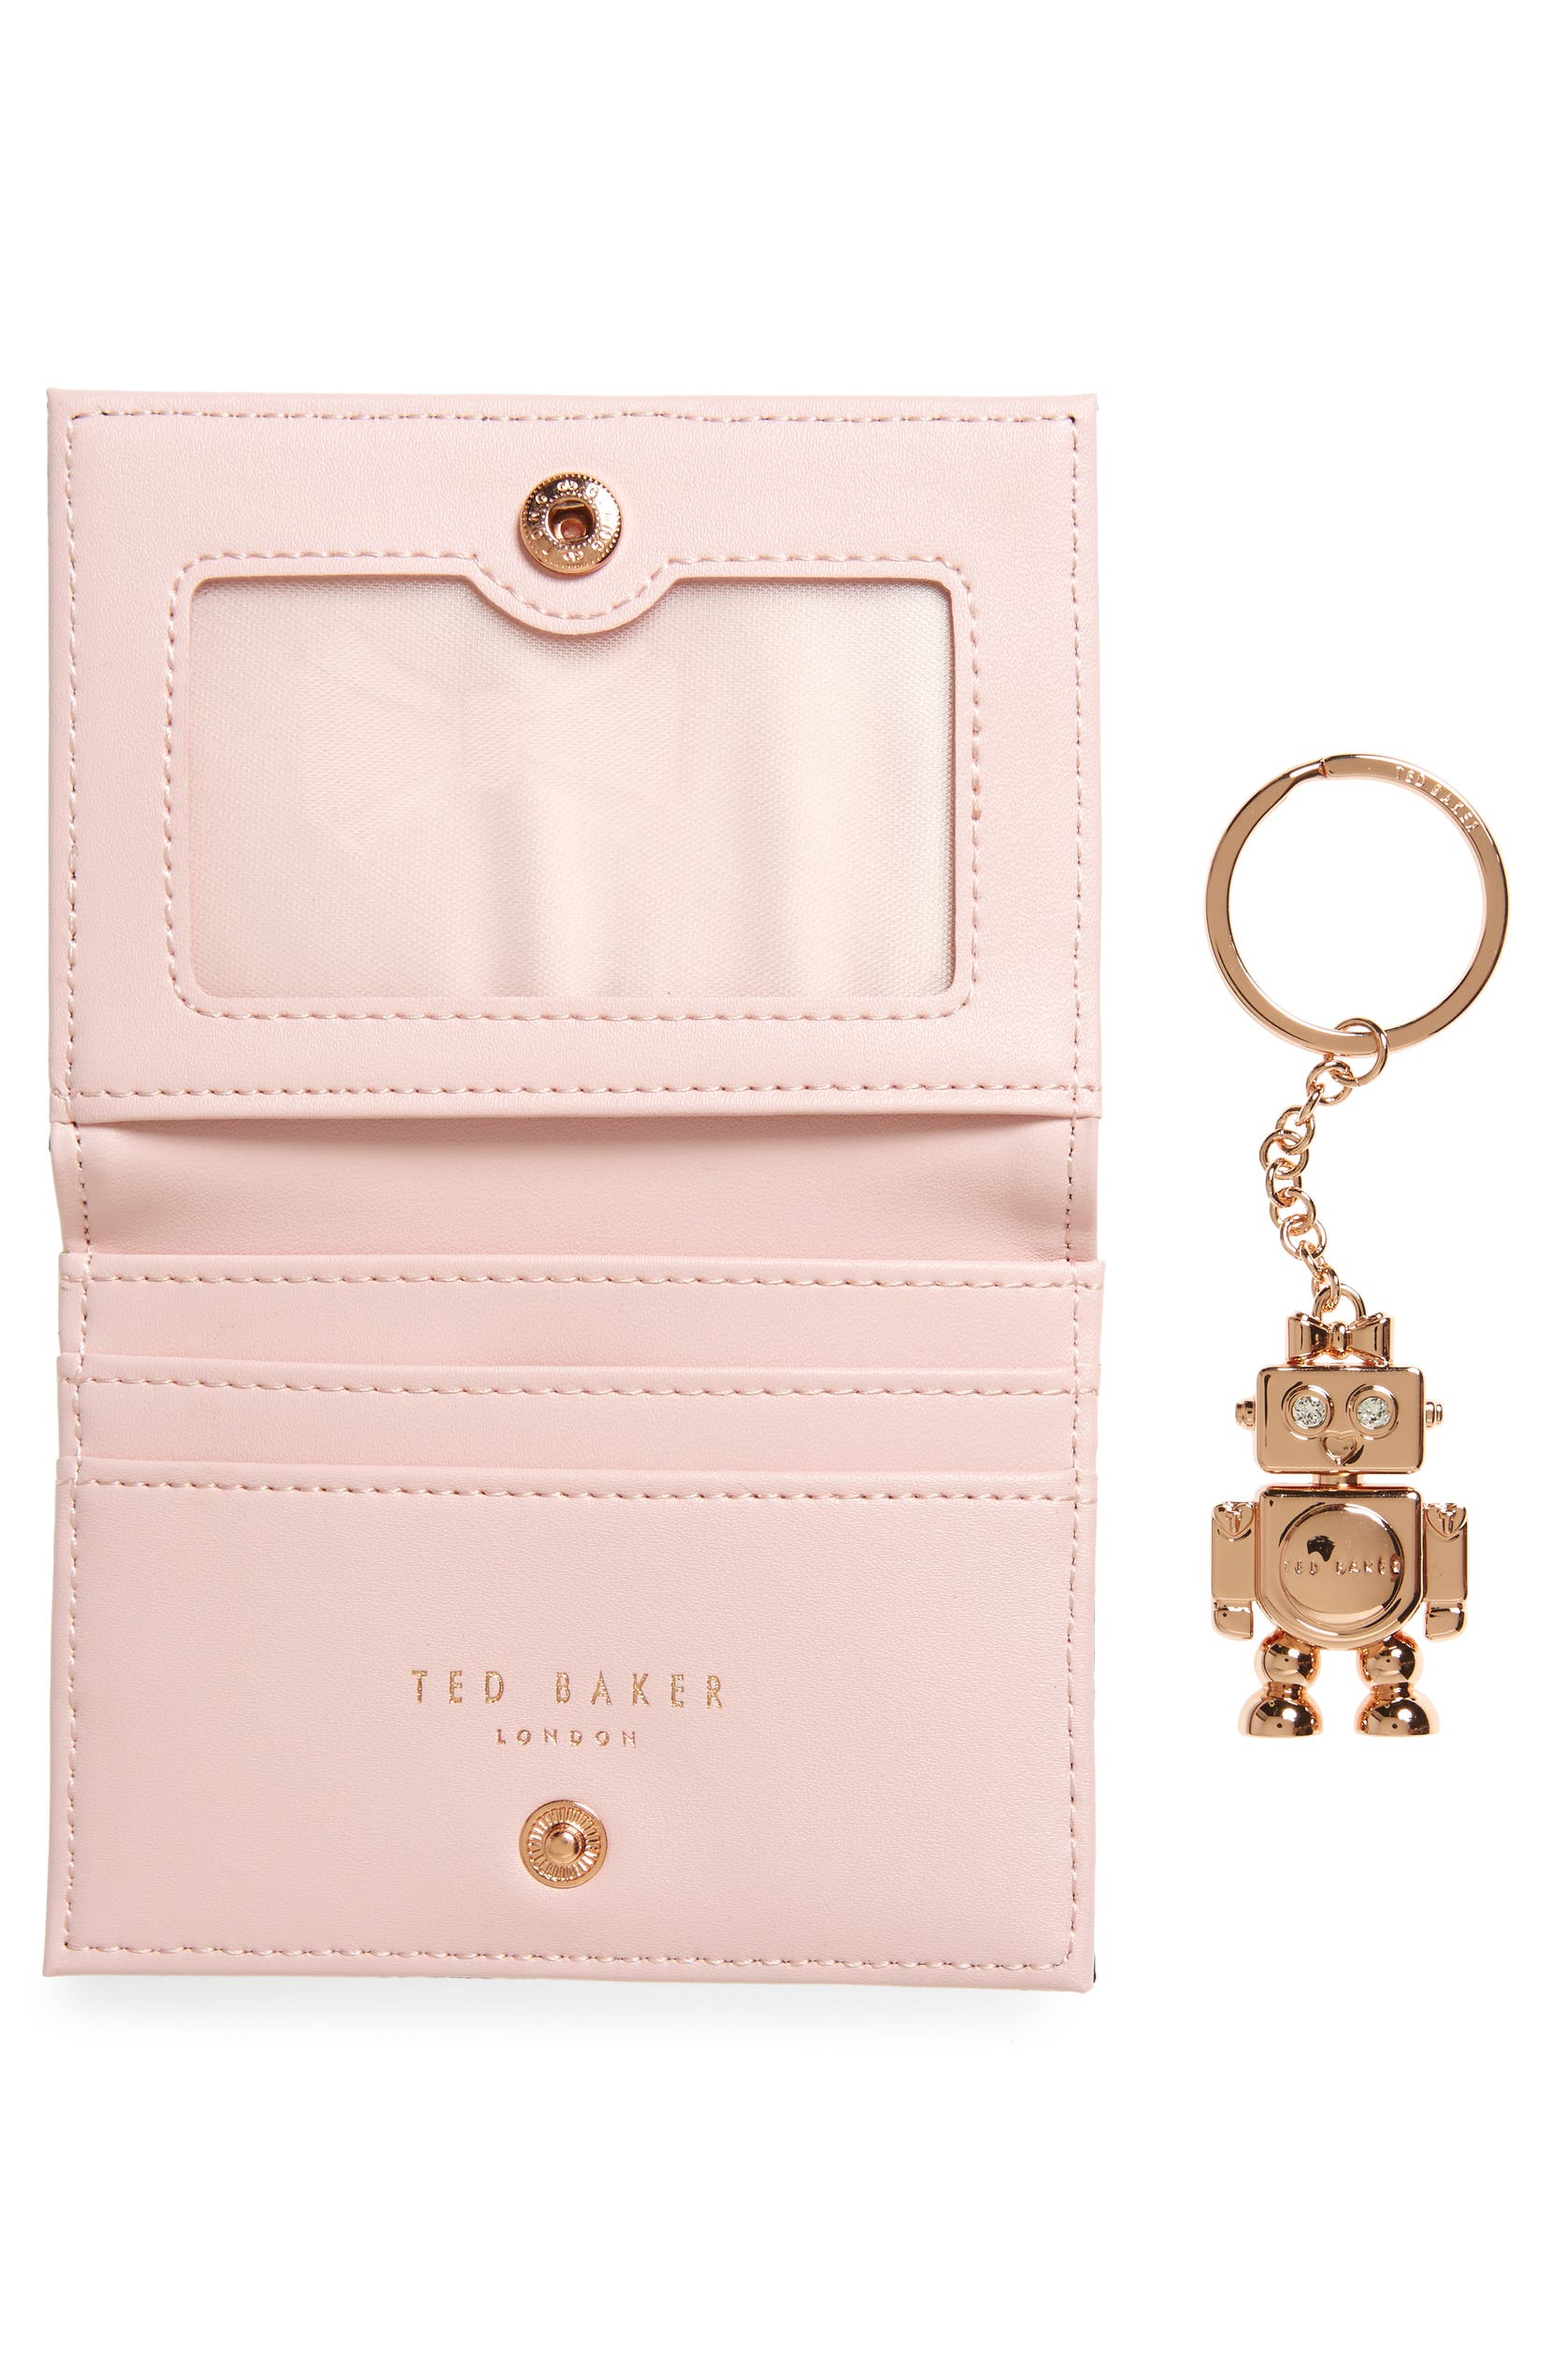 75c356bb4 Ted Baker London Leather Card Case with Robot Key Chain